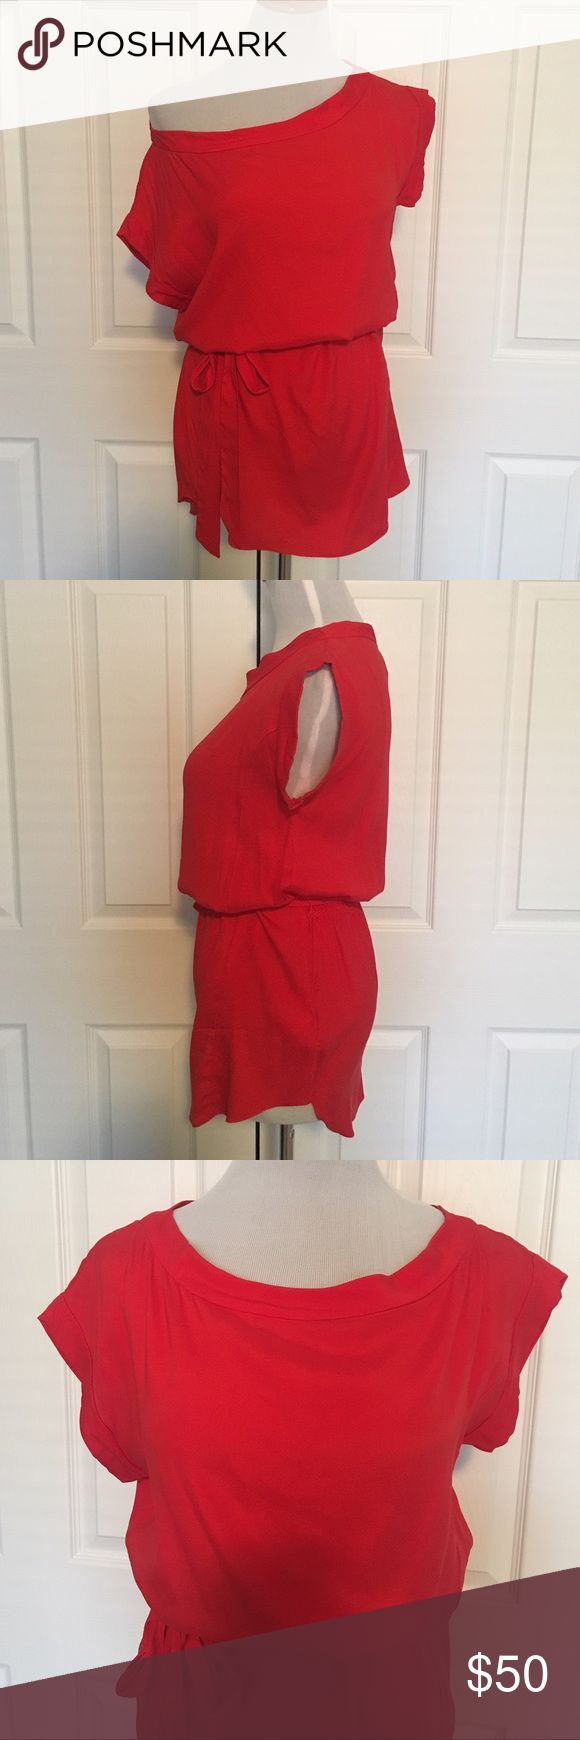 """Guess by Marciano Red Off Shoulder Top Red off the shoulder top Cute scrunch detail in the back  String to tie in the waist area  Length is about 30"""" Size extra small  Good condition, just a little wrinkly Guess by Marciano Tops Blouses"""